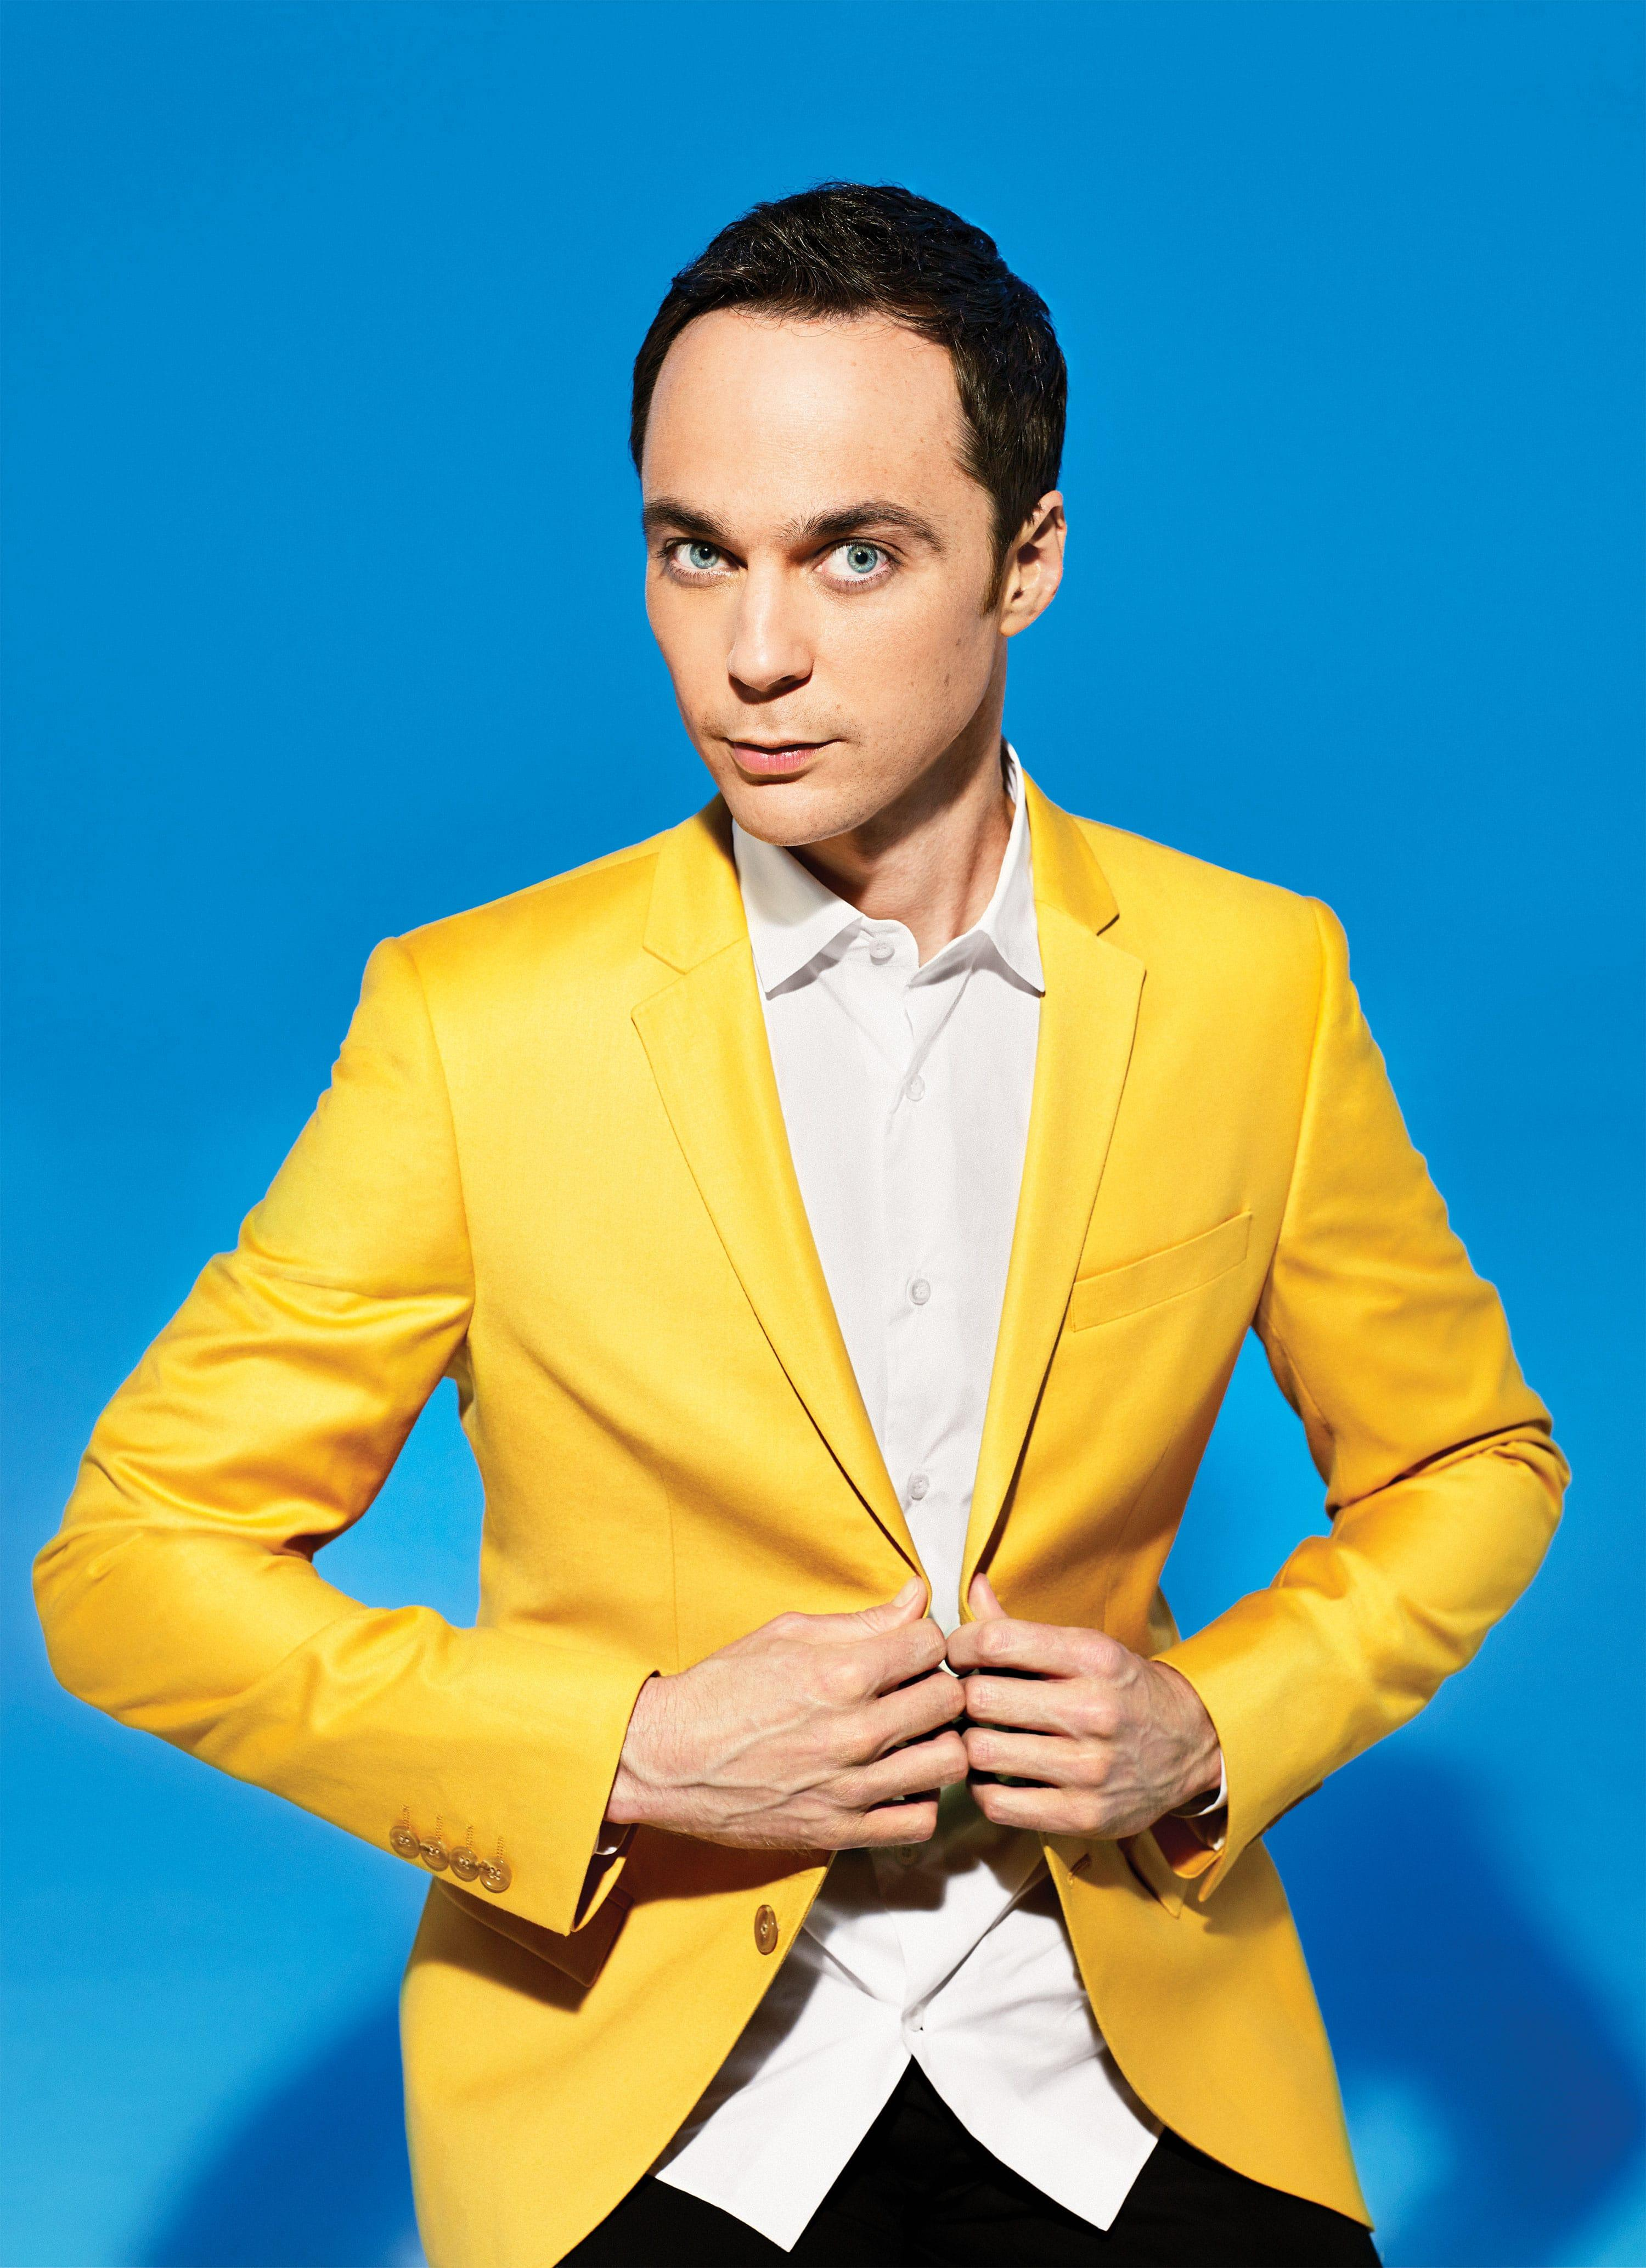 Jim Parsons HD Wallpapers | 7wallpapers.net